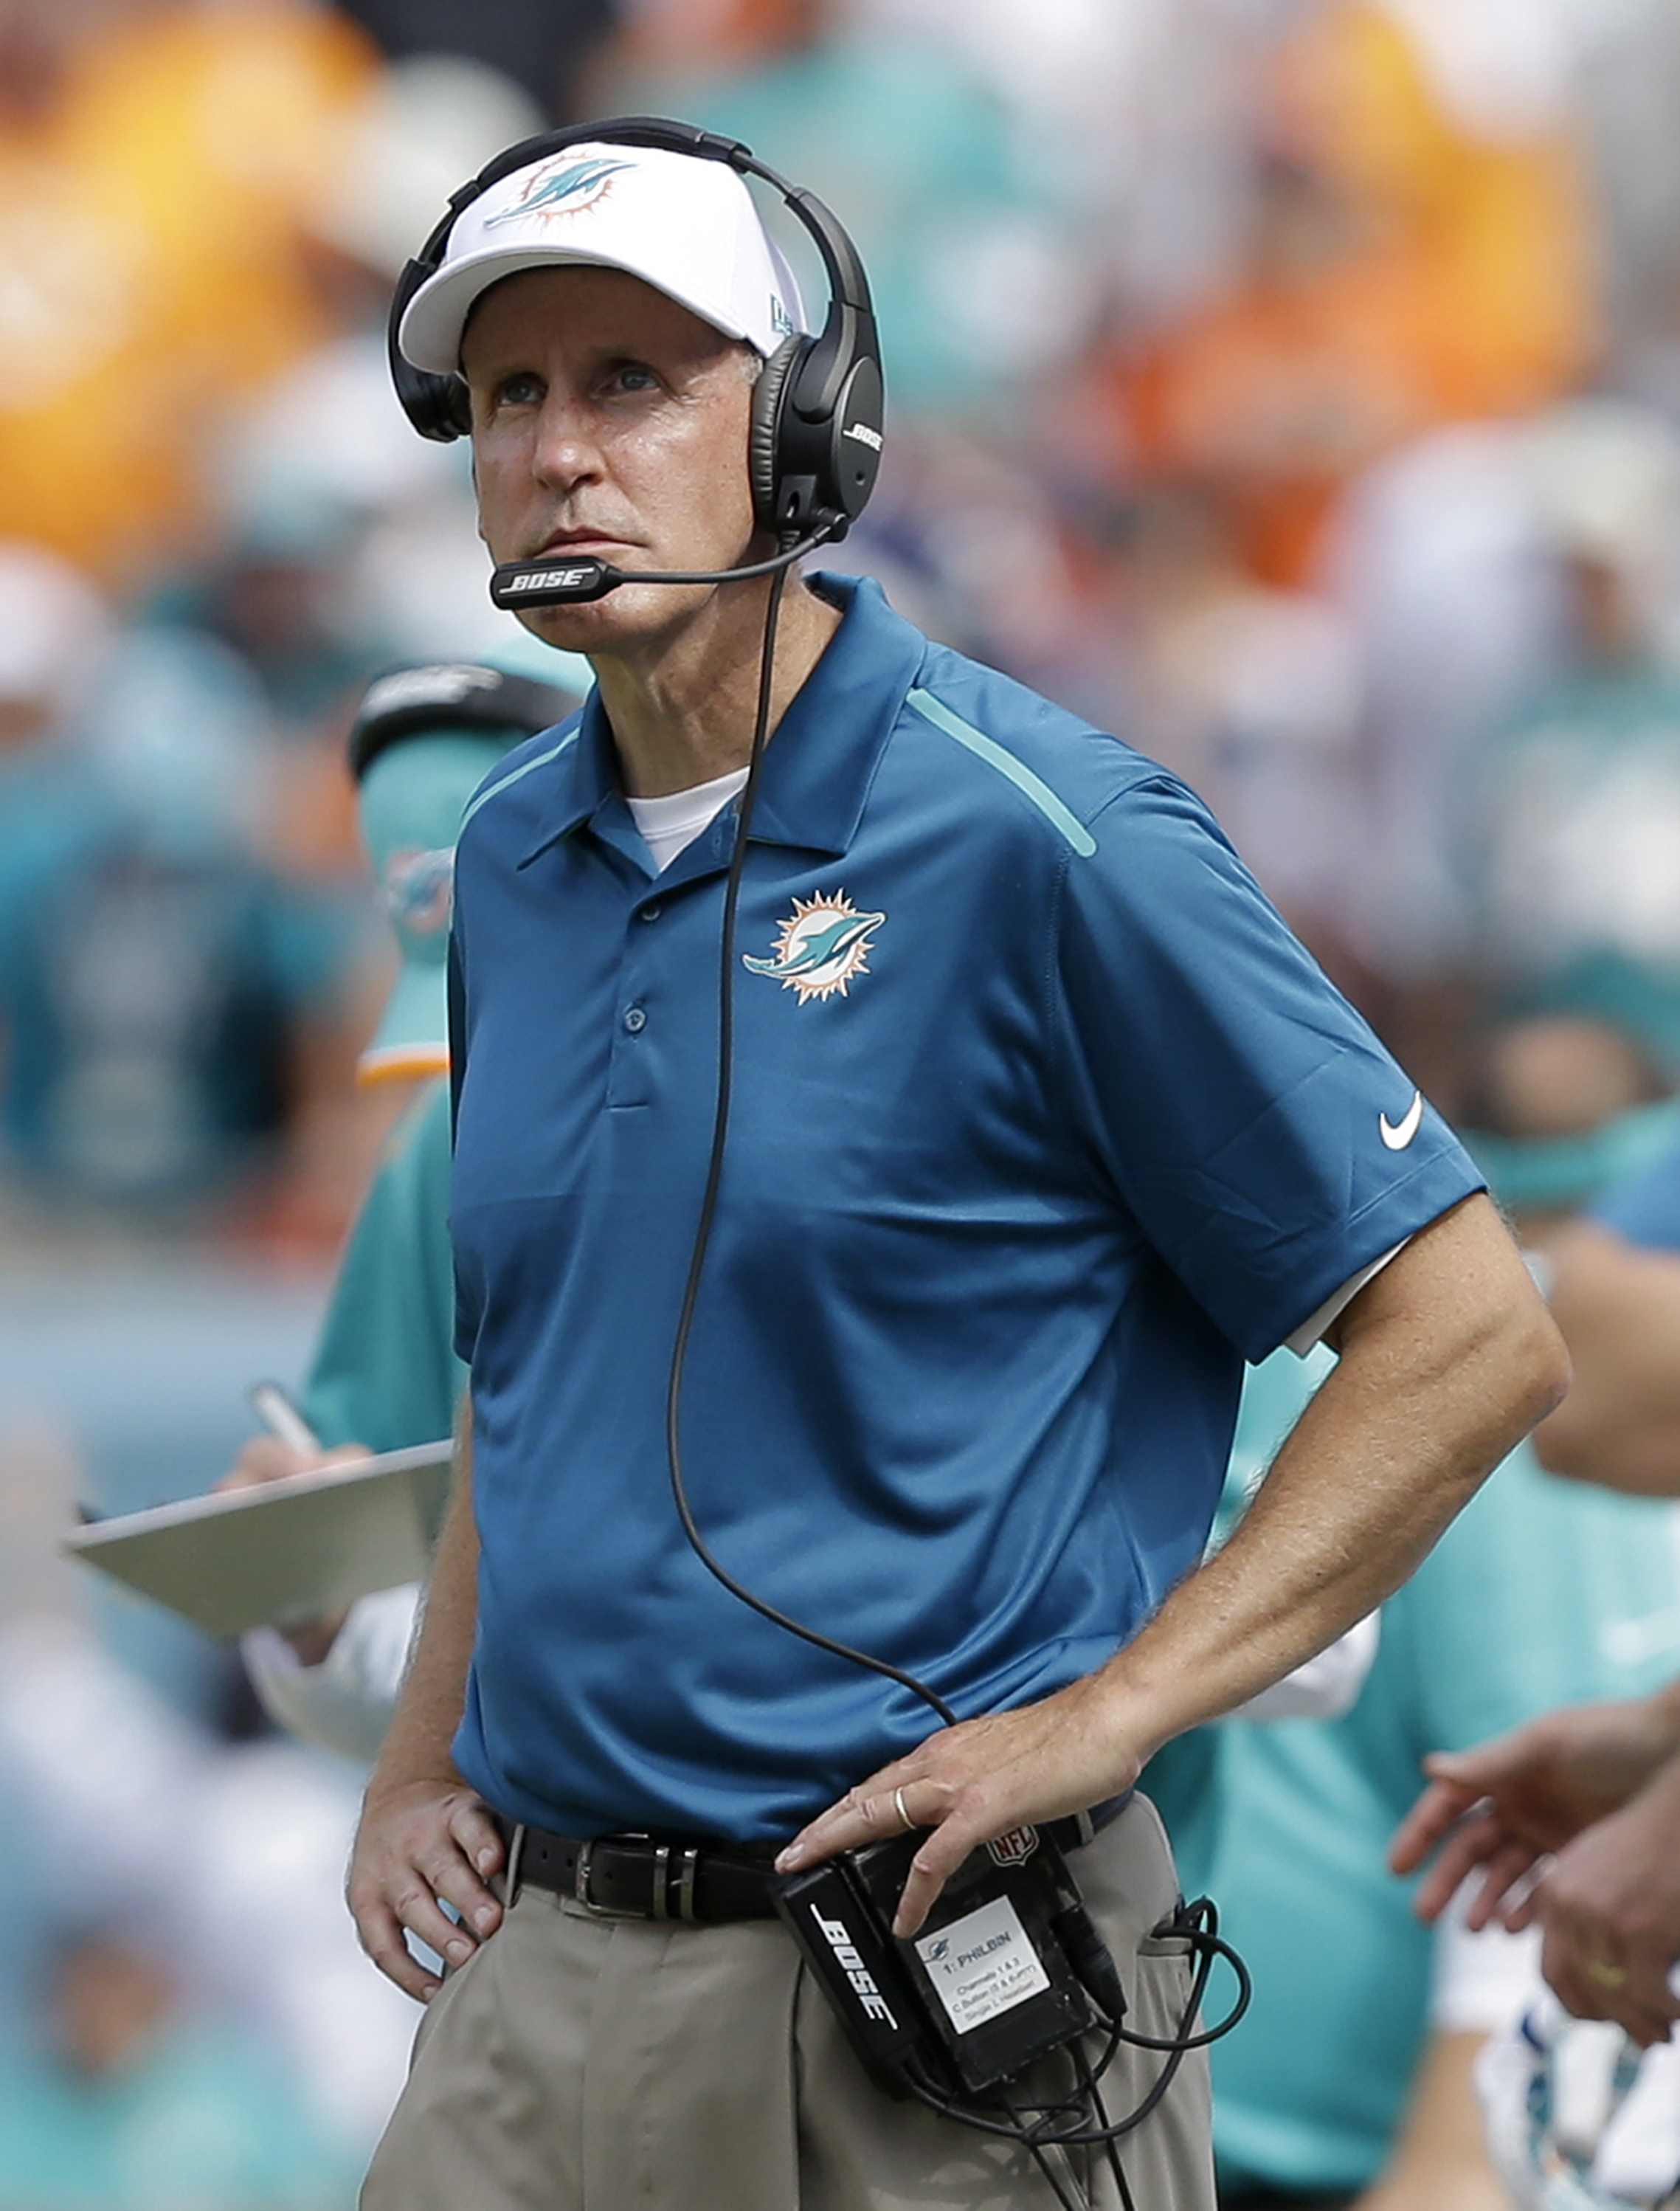 FILE - In this Sept. 7, 2014, file photo, Miami Dolphins head coach Joe Philbin looks up from the sideline during the second half of an NFL football game against the New England Patriots in Miami Gardens, Fla. The NFL's coaching hot seat already has burne